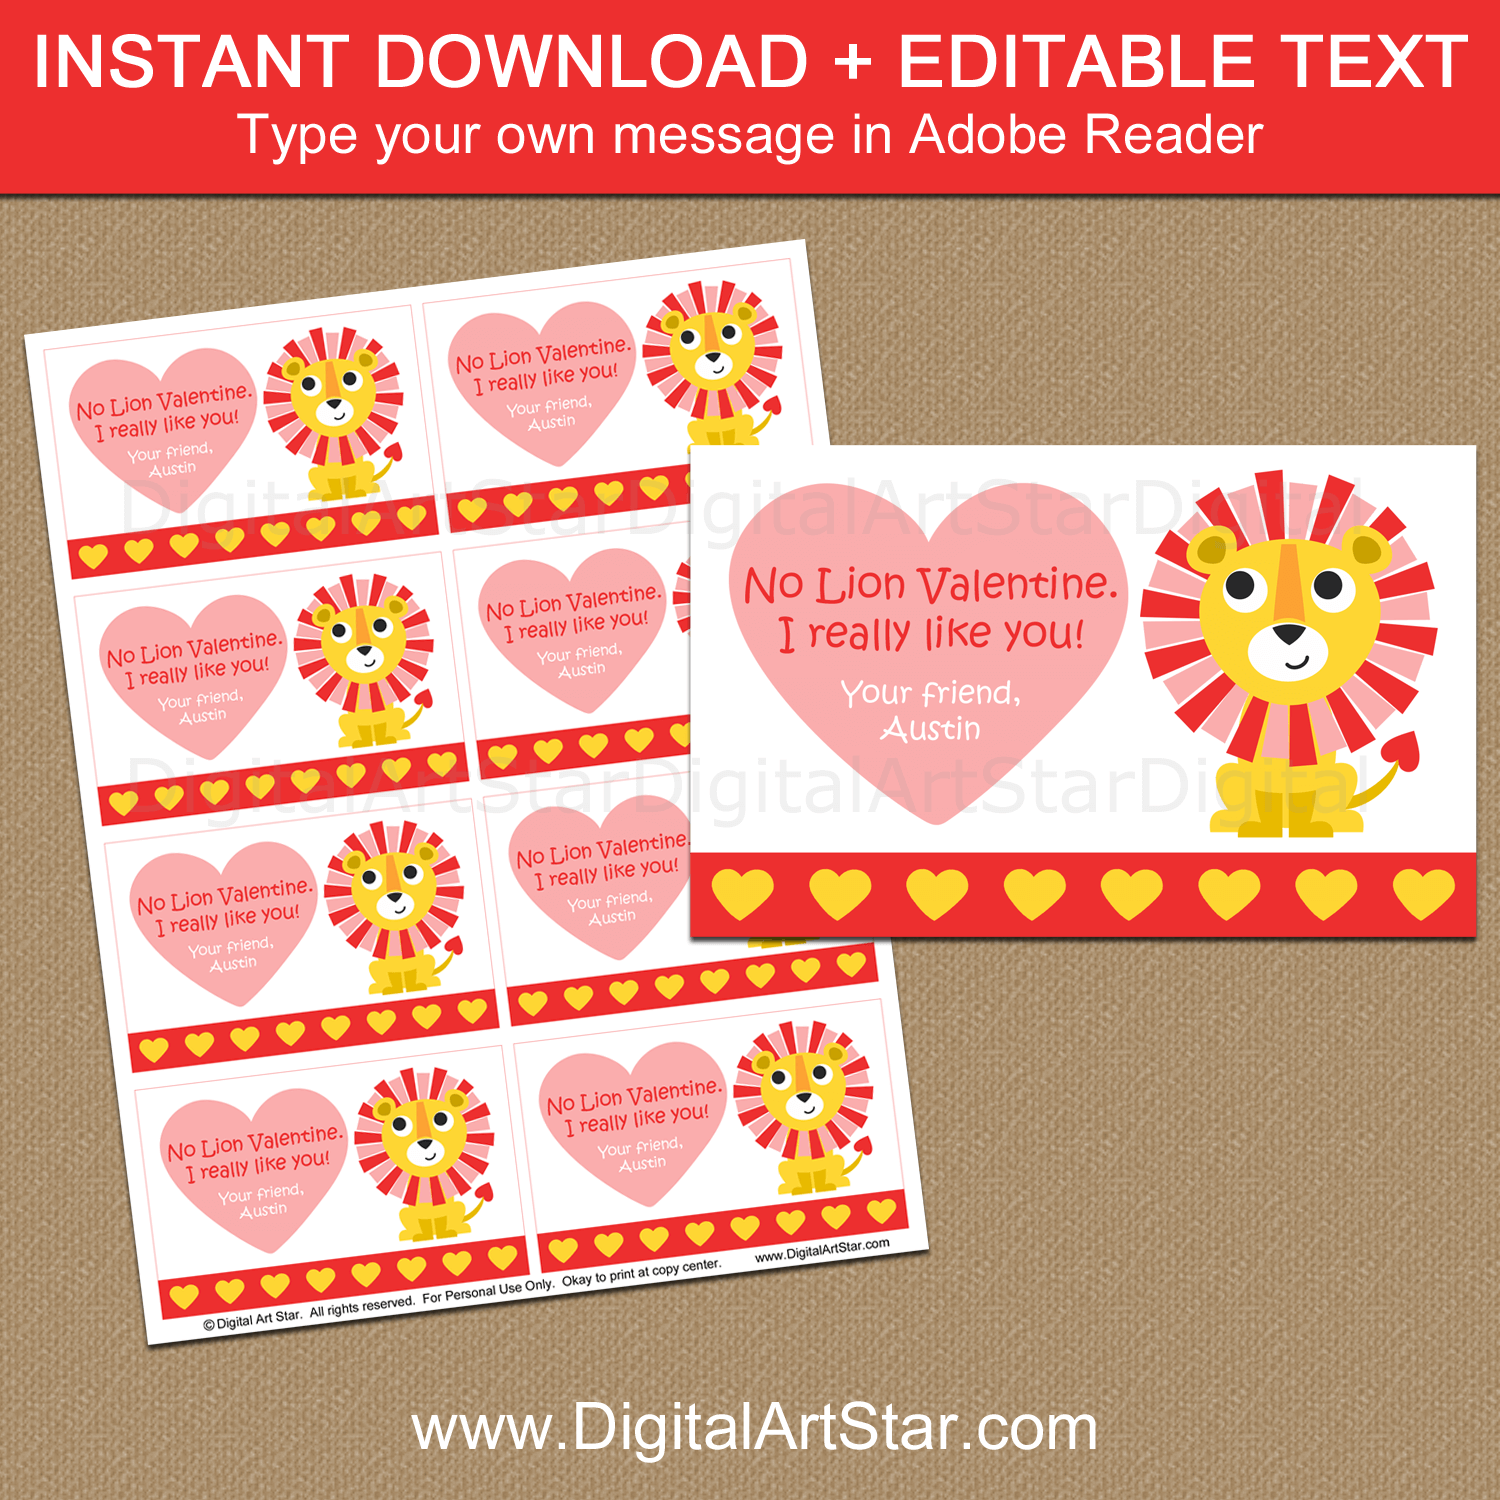 Editable Valentine's Day Card Template with Lion